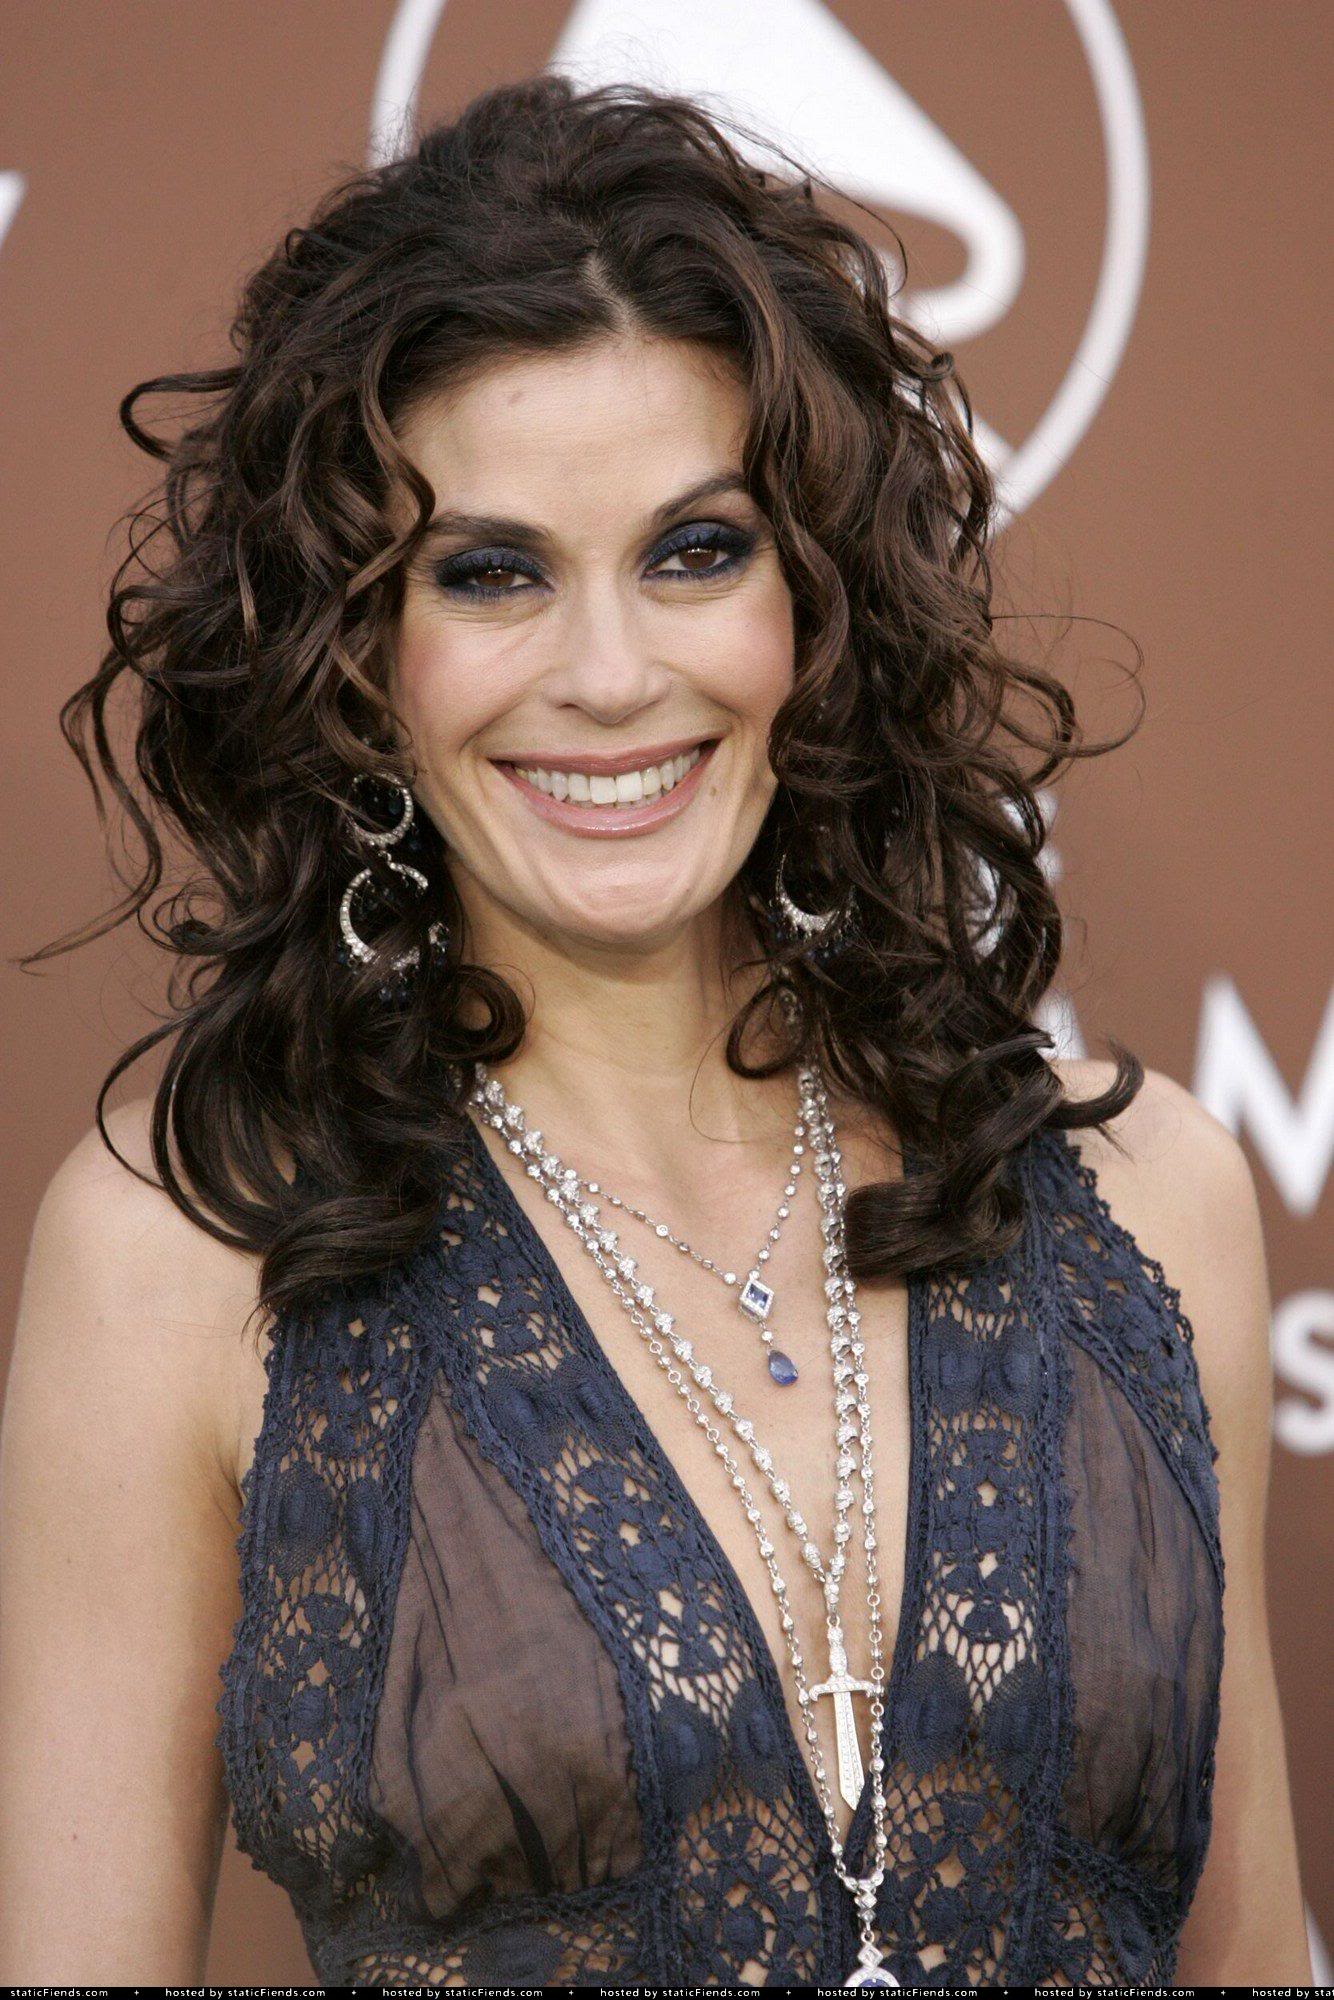 teri hatcher vkteri hatcher 2016, teri hatcher 2017, teri hatcher vk, teri hatcher wikipedia, teri hatcher wiki, teri hatcher wdw, teri hatcher 2015, teri hatcher twitter, teri hatcher 2006, teri hatcher imdb, teri hatcher movies, teri hatcher recent, teri hatcher and daughter, teri hatcher relationship with co stars, teri hatcher personality, teri hatcher fan, teri hatcher site, teri hatcher courteney cox, teri hatcher triathlon, teri hatcher mother